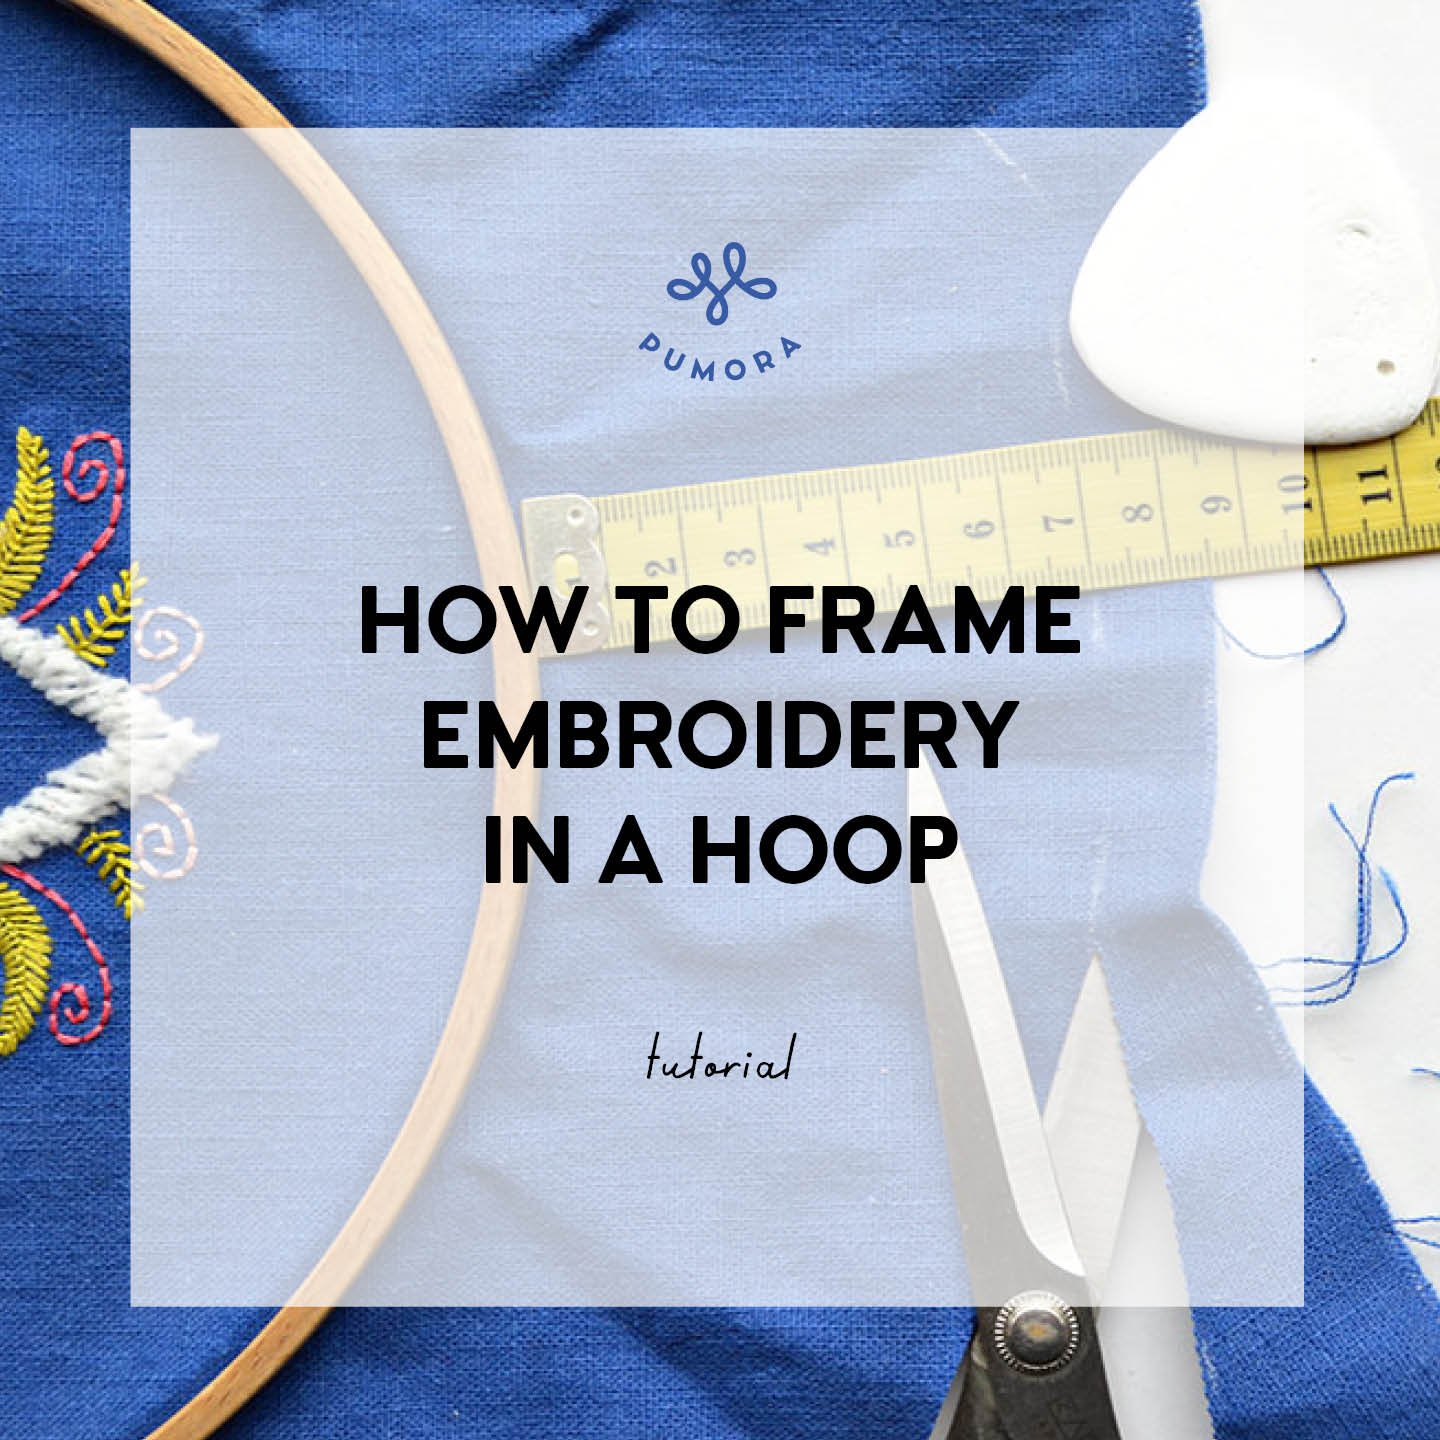 how to frame embroidery in a hoop